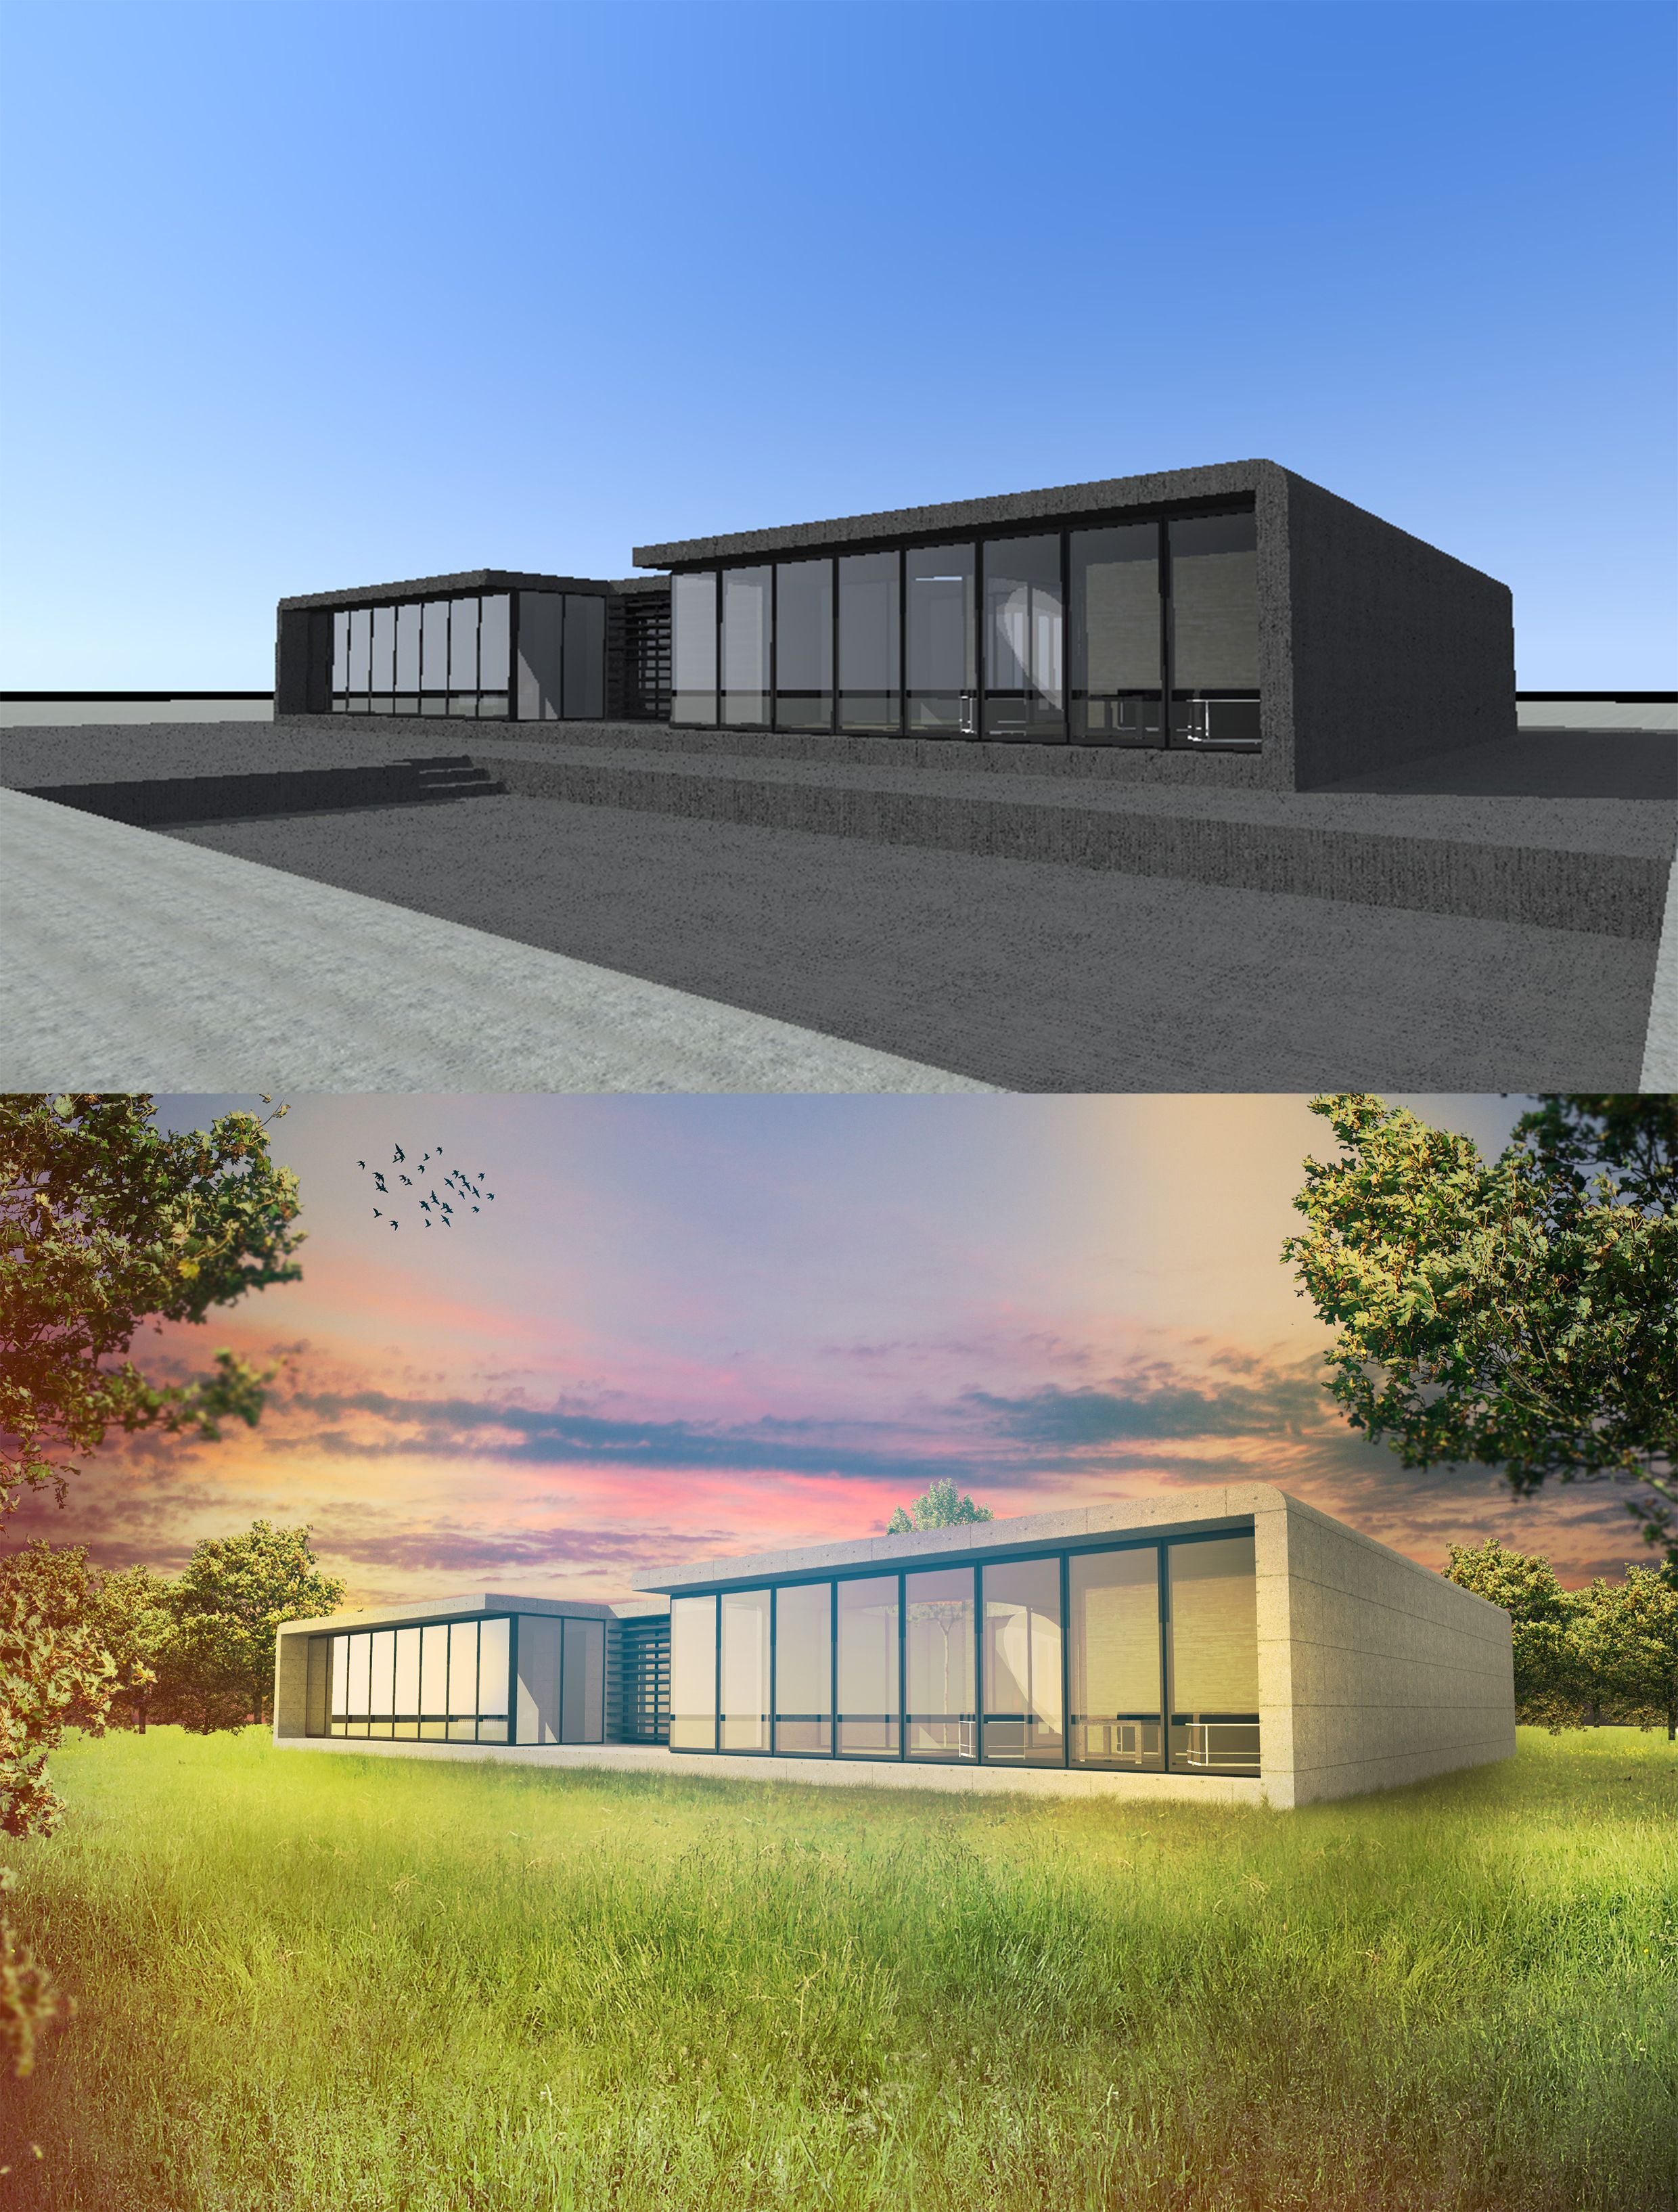 architectural rendering tutorials tips and the definitive projet ombre skp curtsy of trimble 3d warhouse google